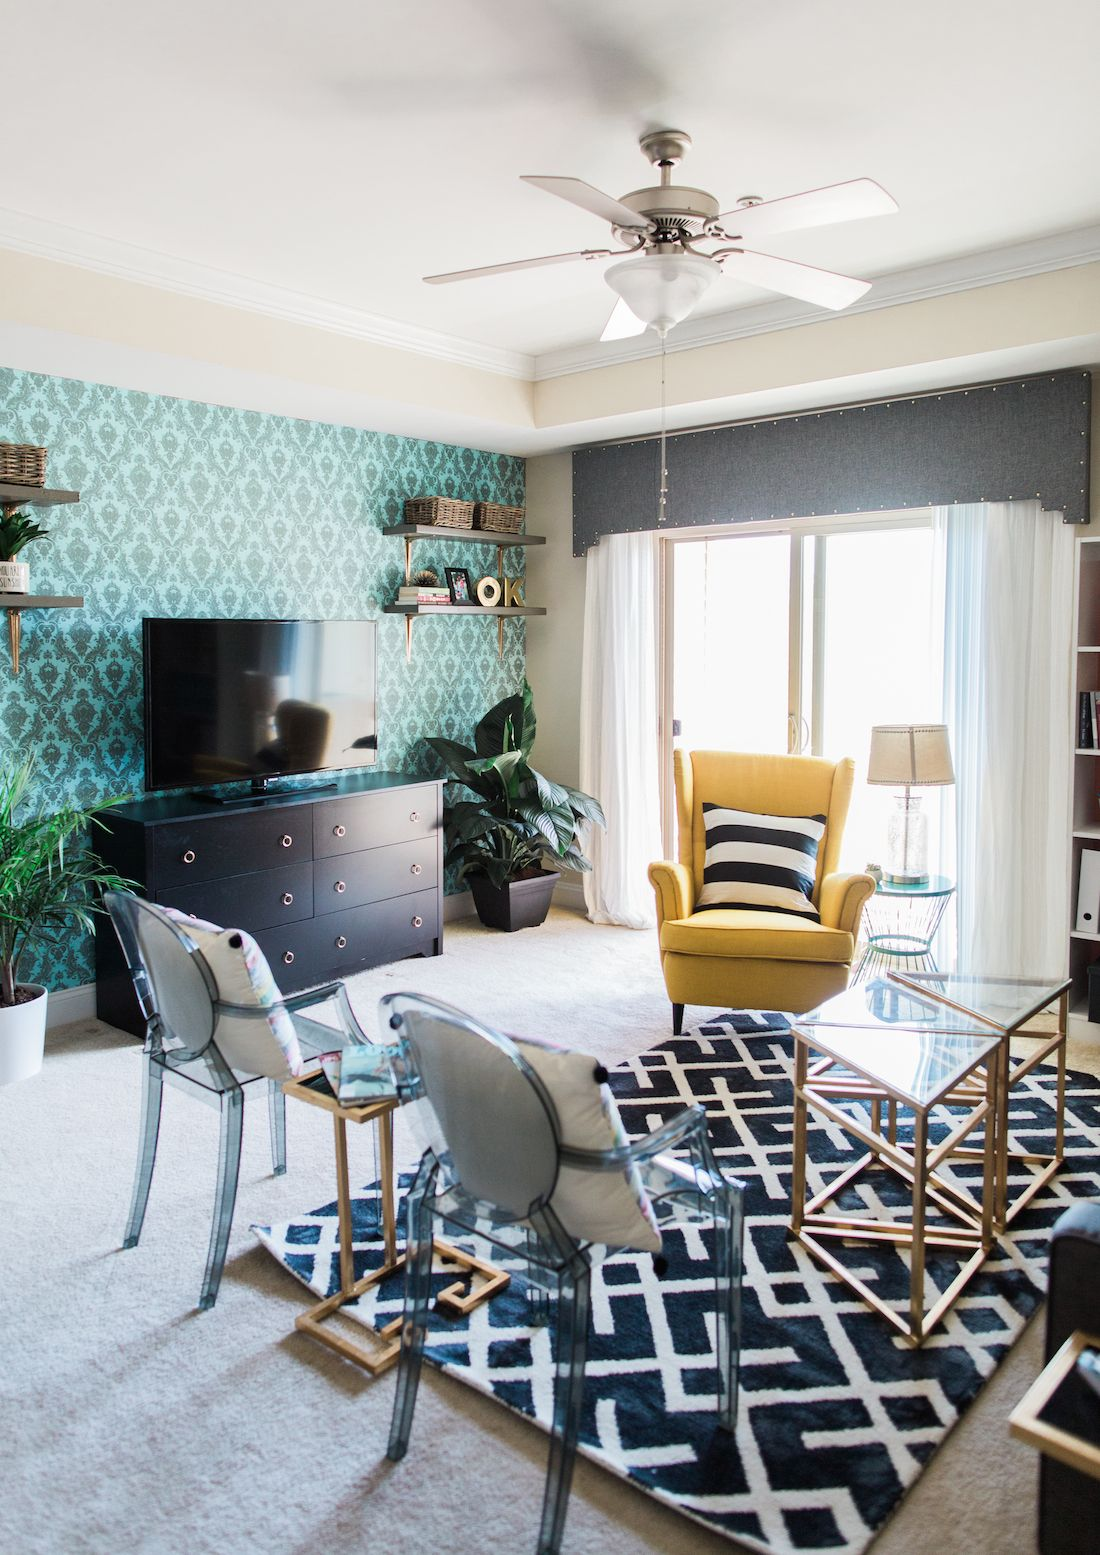 Put some wow in your rental with bold temporary wallpaper